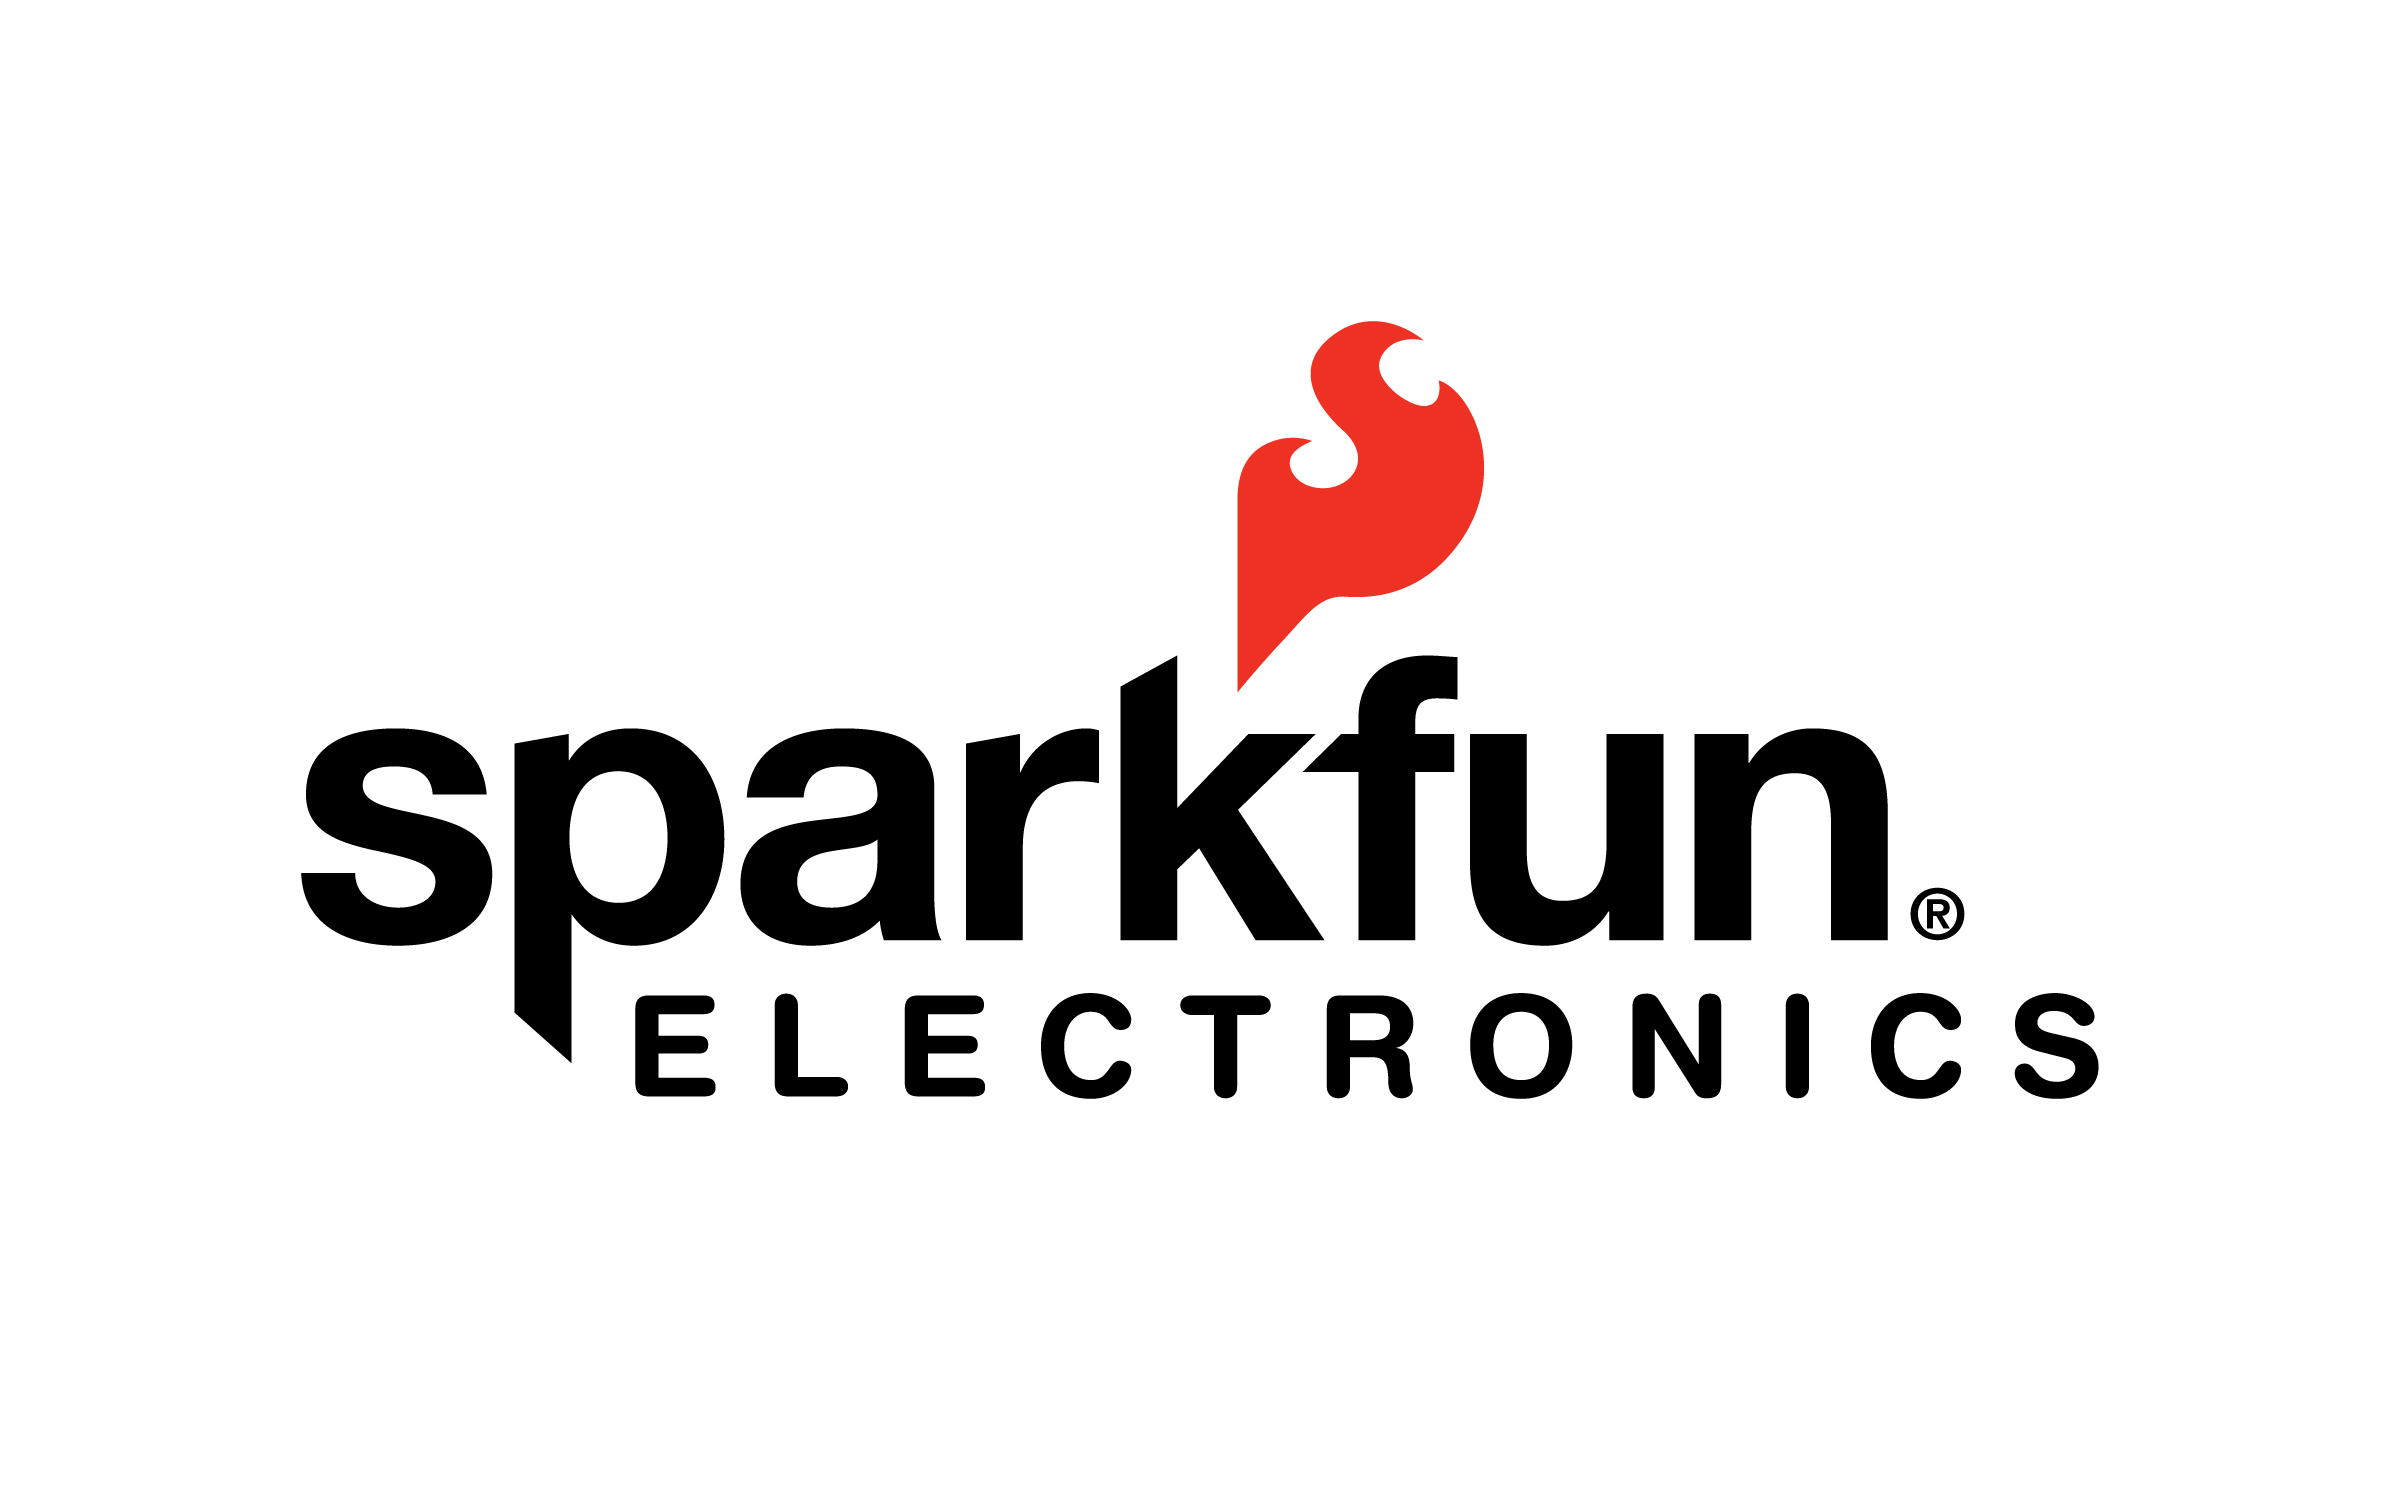 Black text with white background sparkfun logo